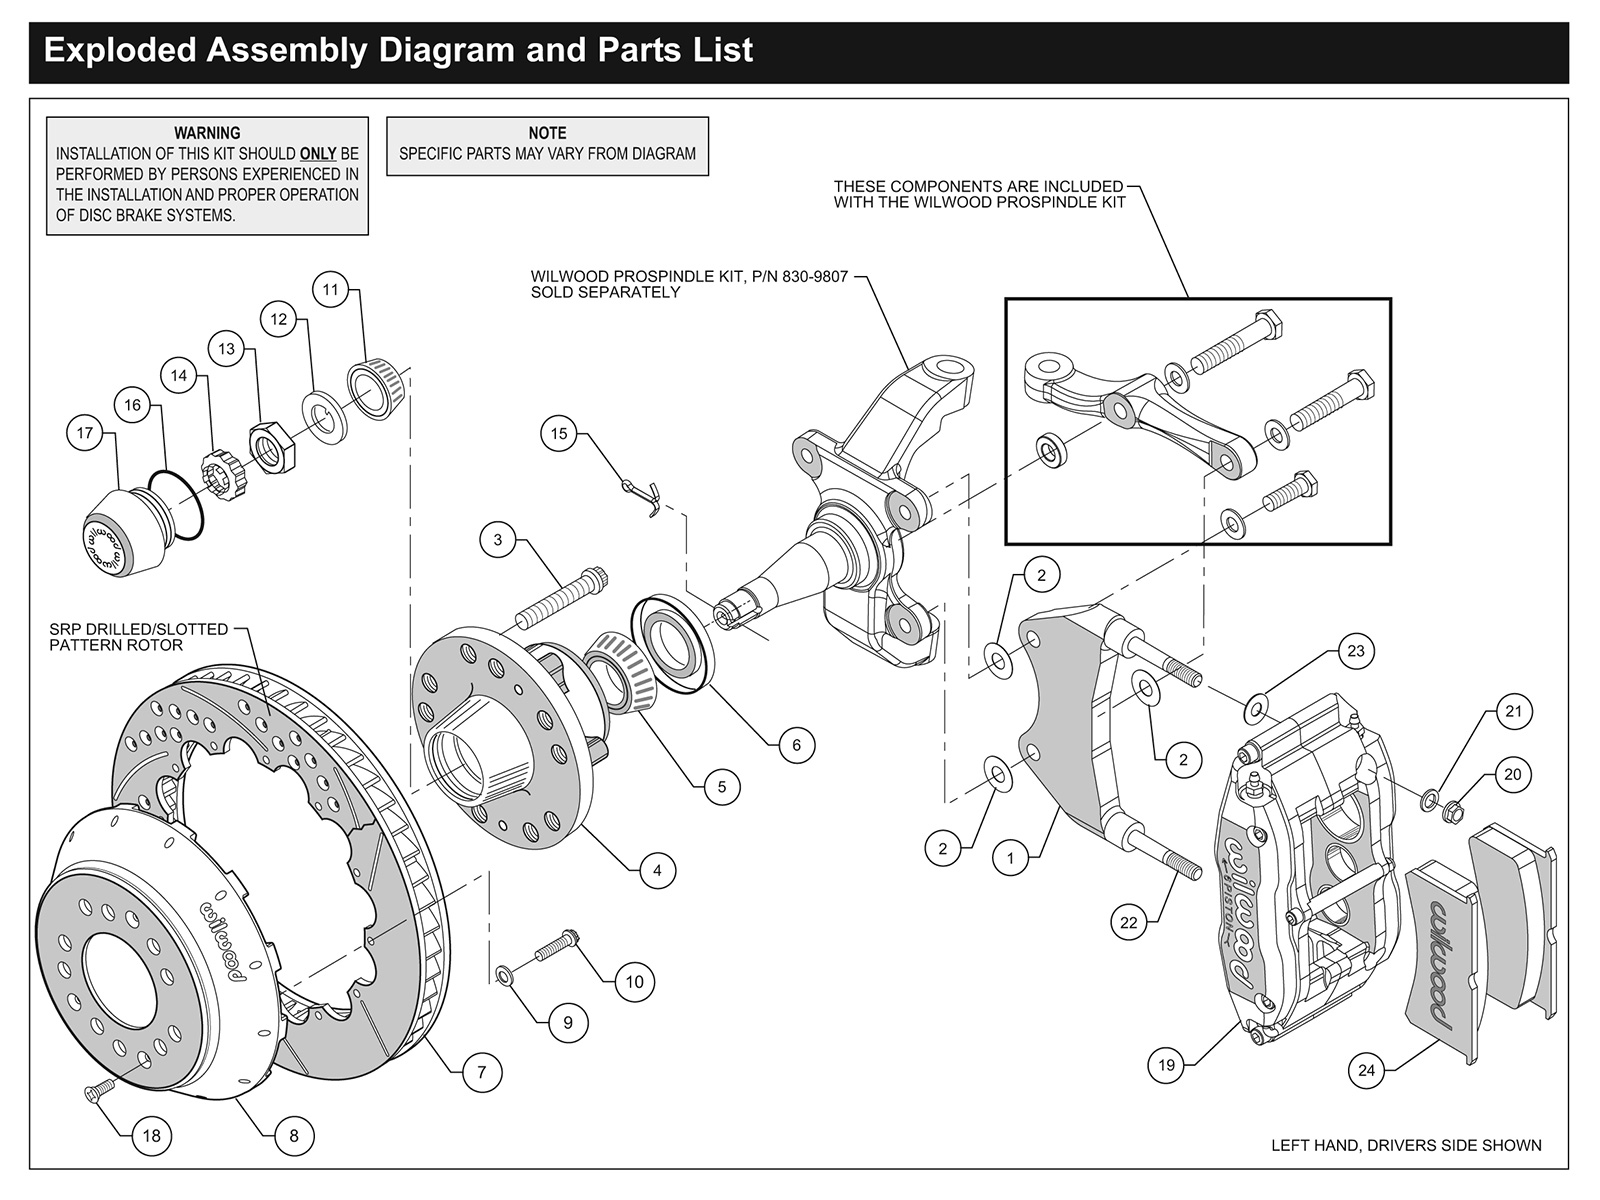 hight resolution of this is an exploded view of a typical wilwood front brake assembly in